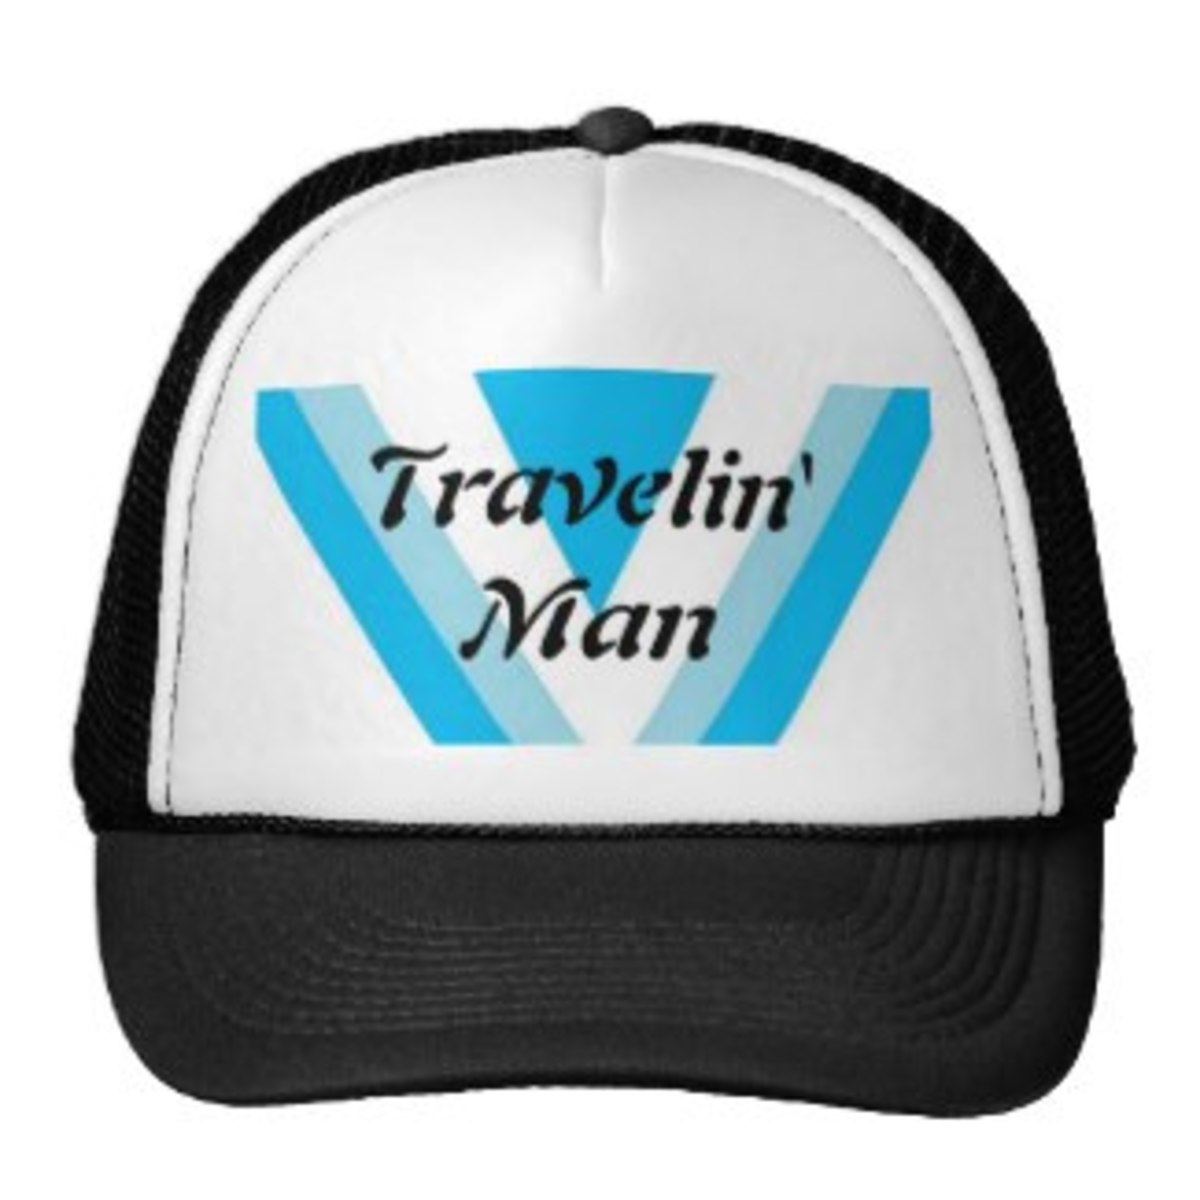 Travelin' Man by seashell2